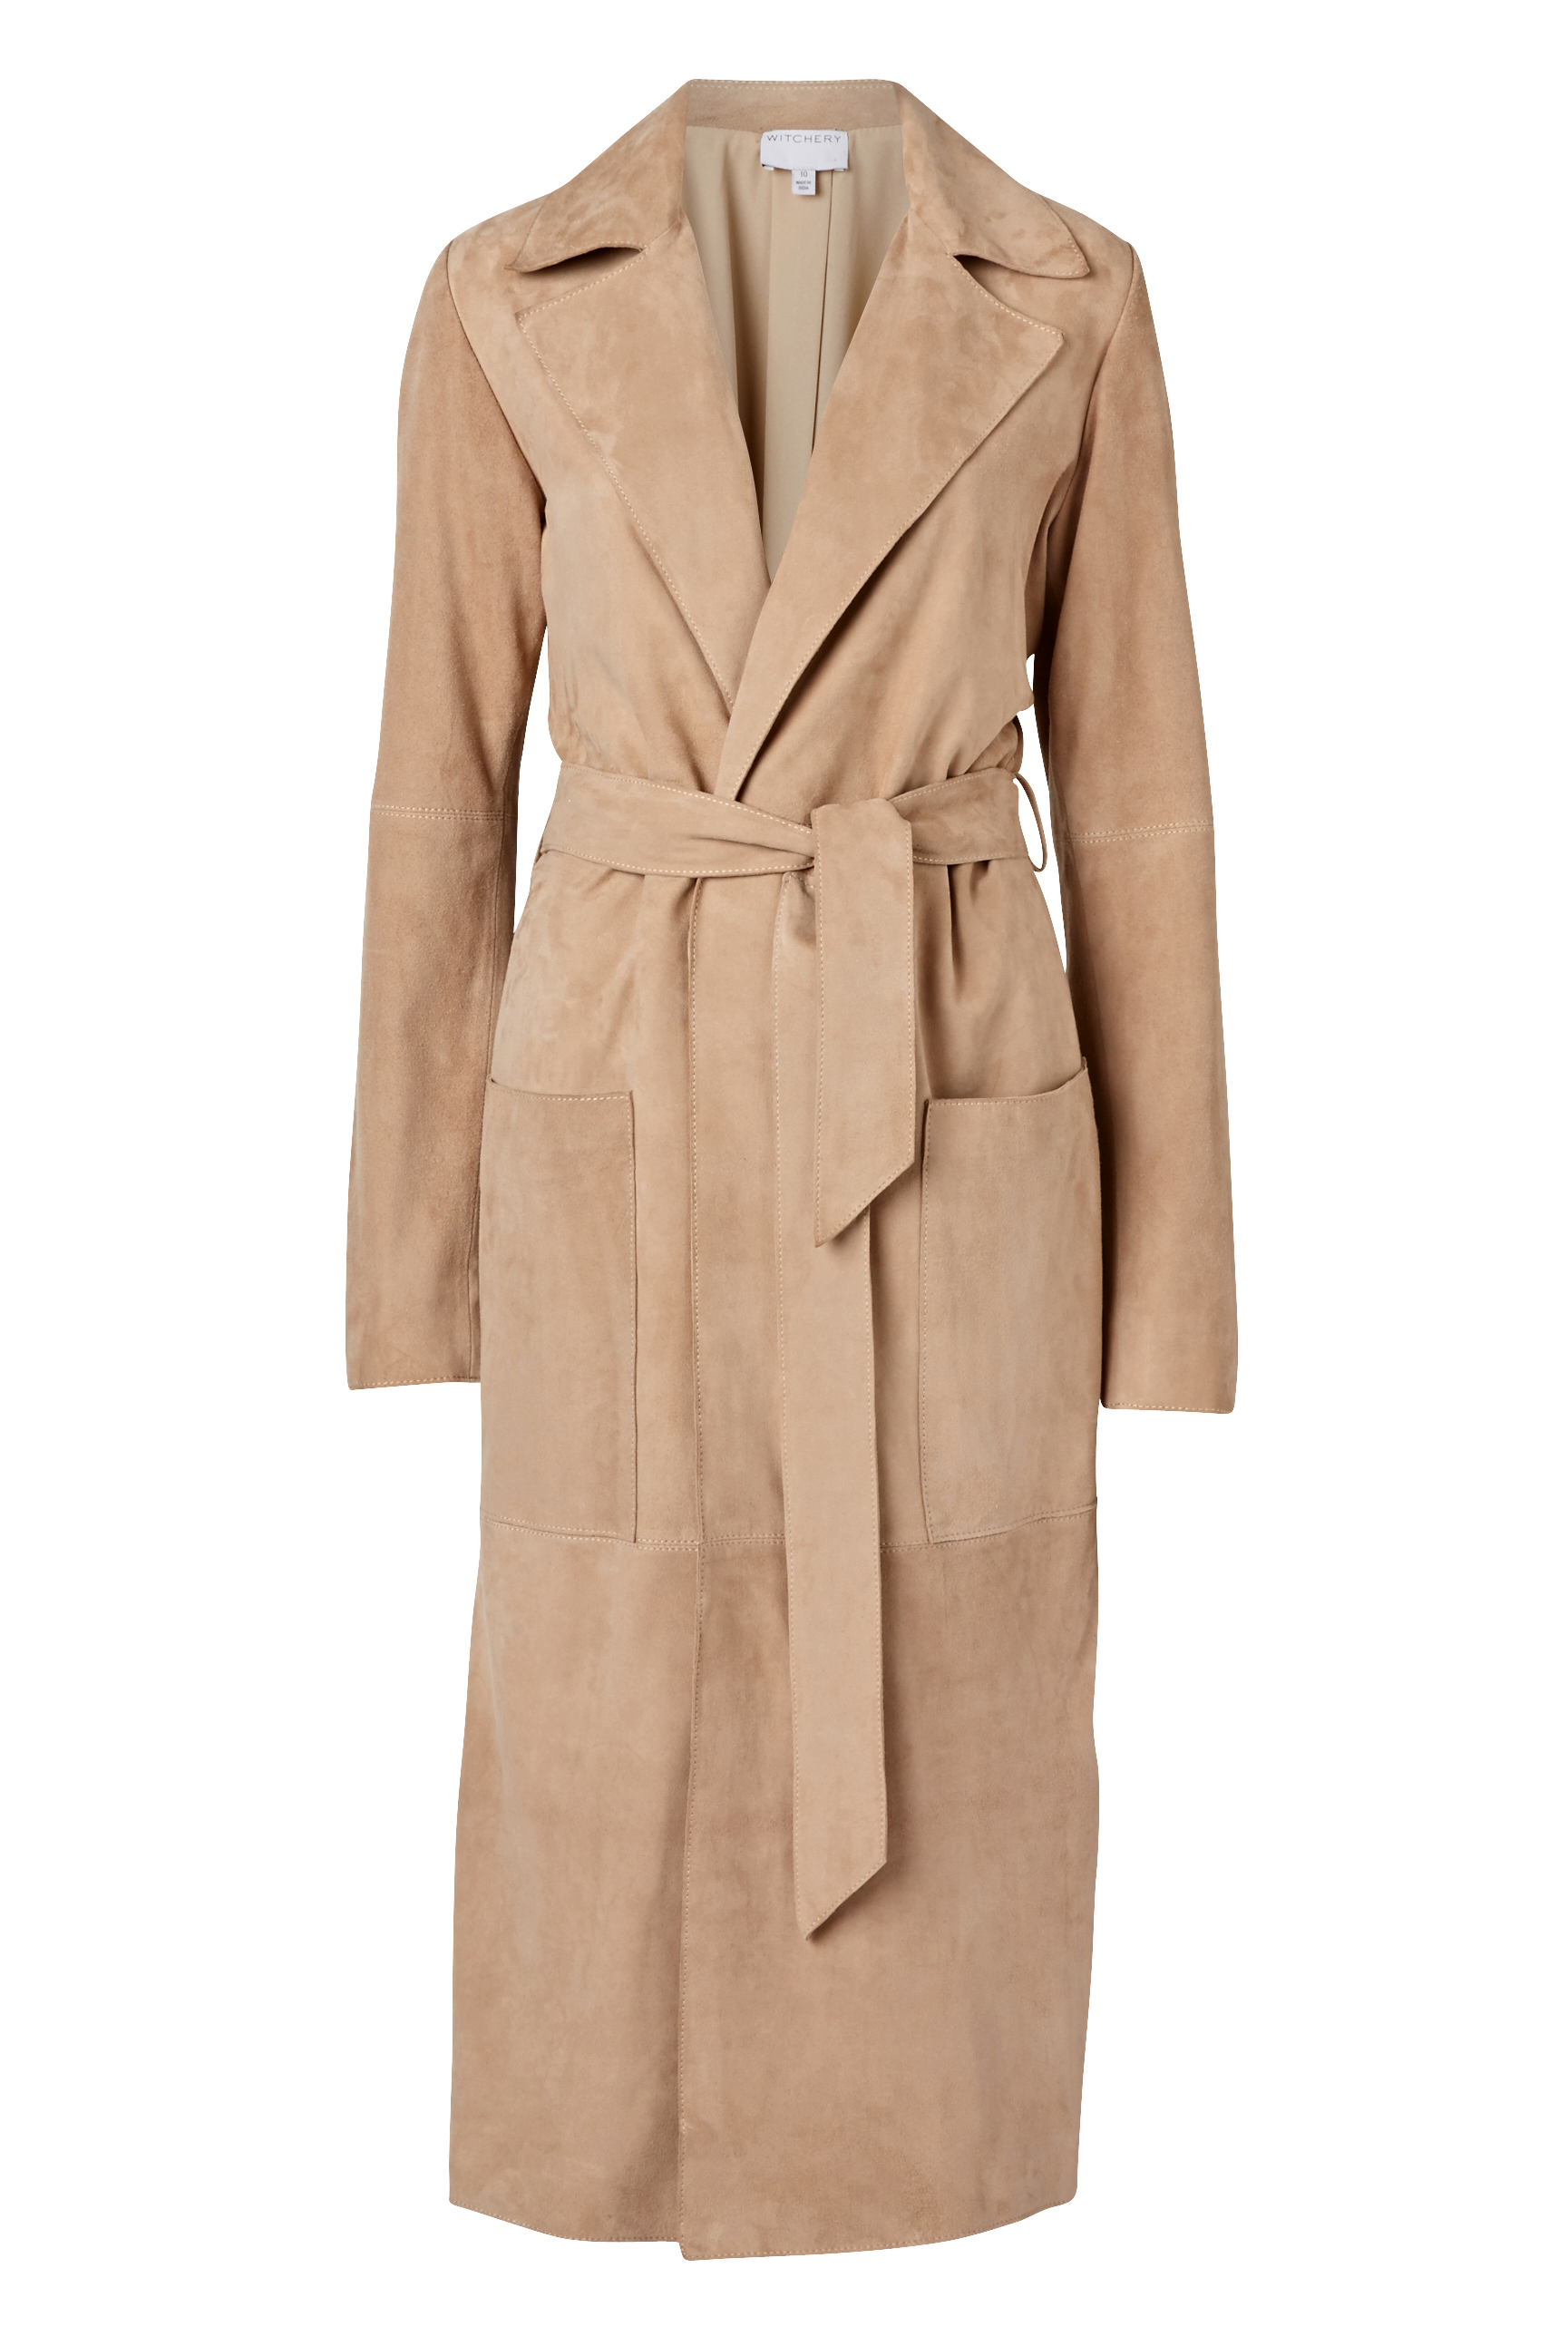 60190017_Witchery First Edition Makoro Suede Coat, RRP$799.90